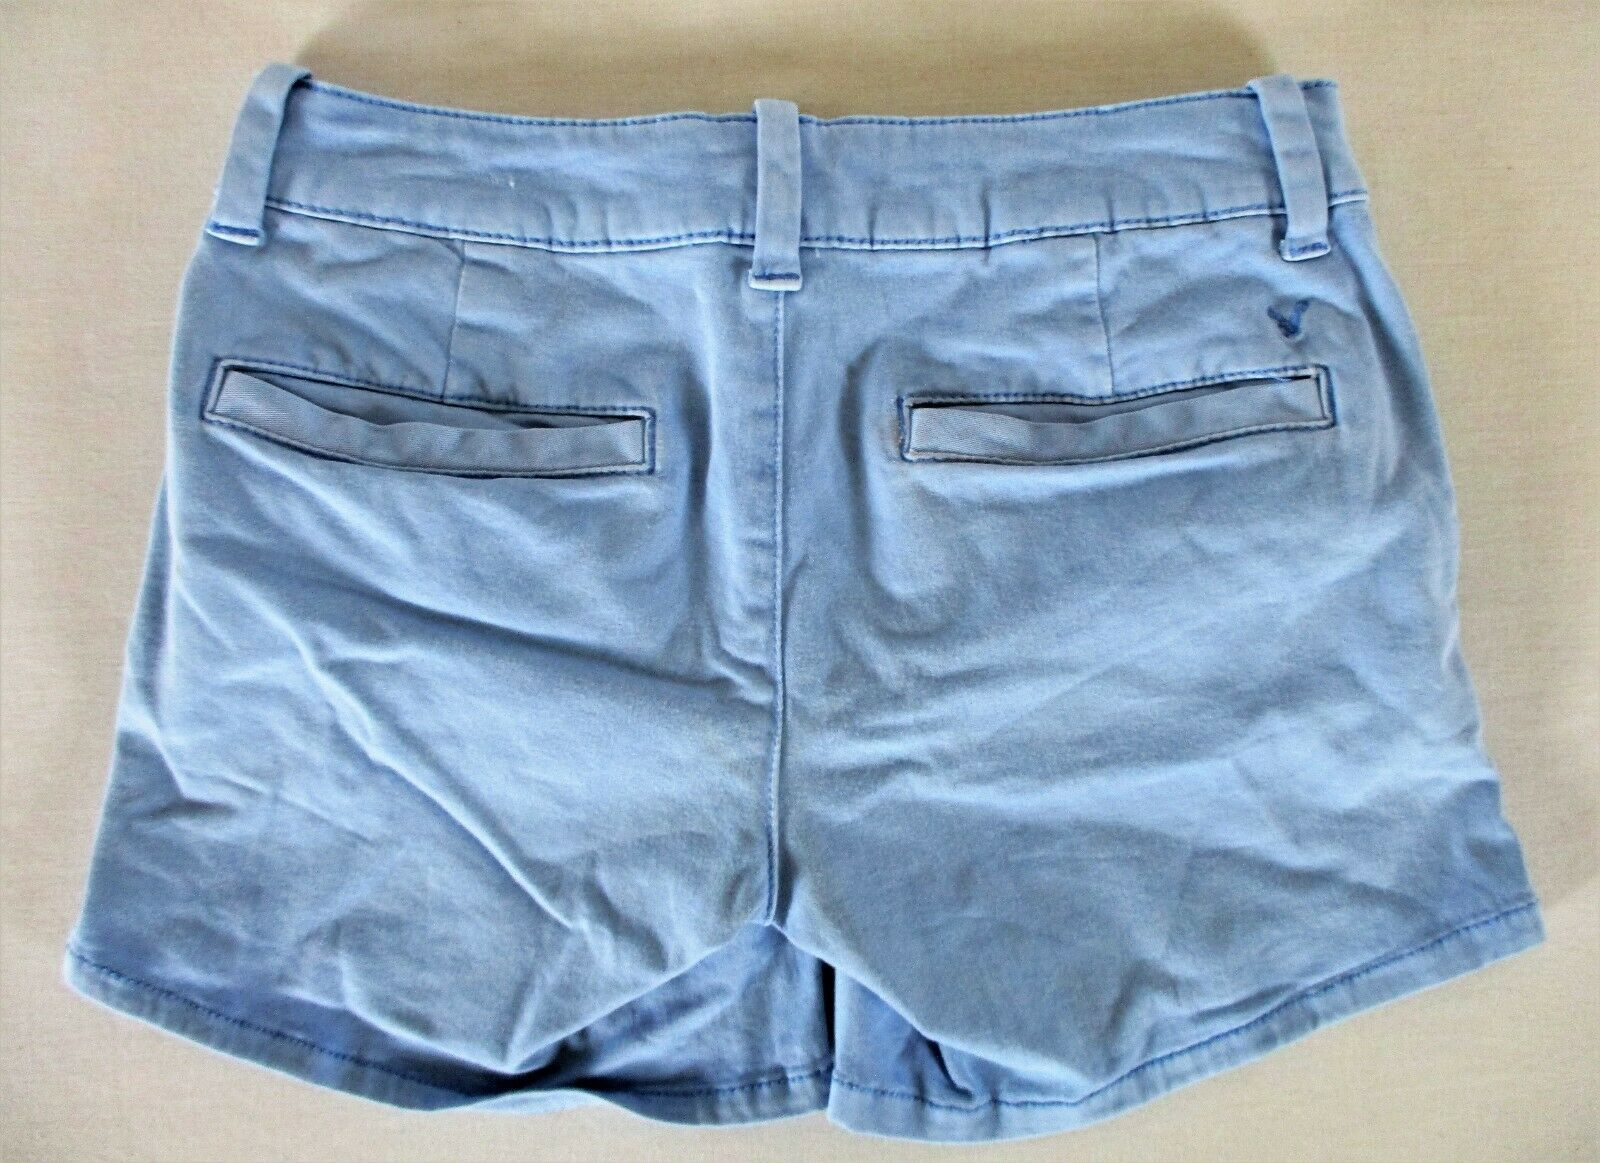 AMERICAN EAGLE OUTFITTERS womens Sz 2 W28 light blue CHINO stretch shorts K)